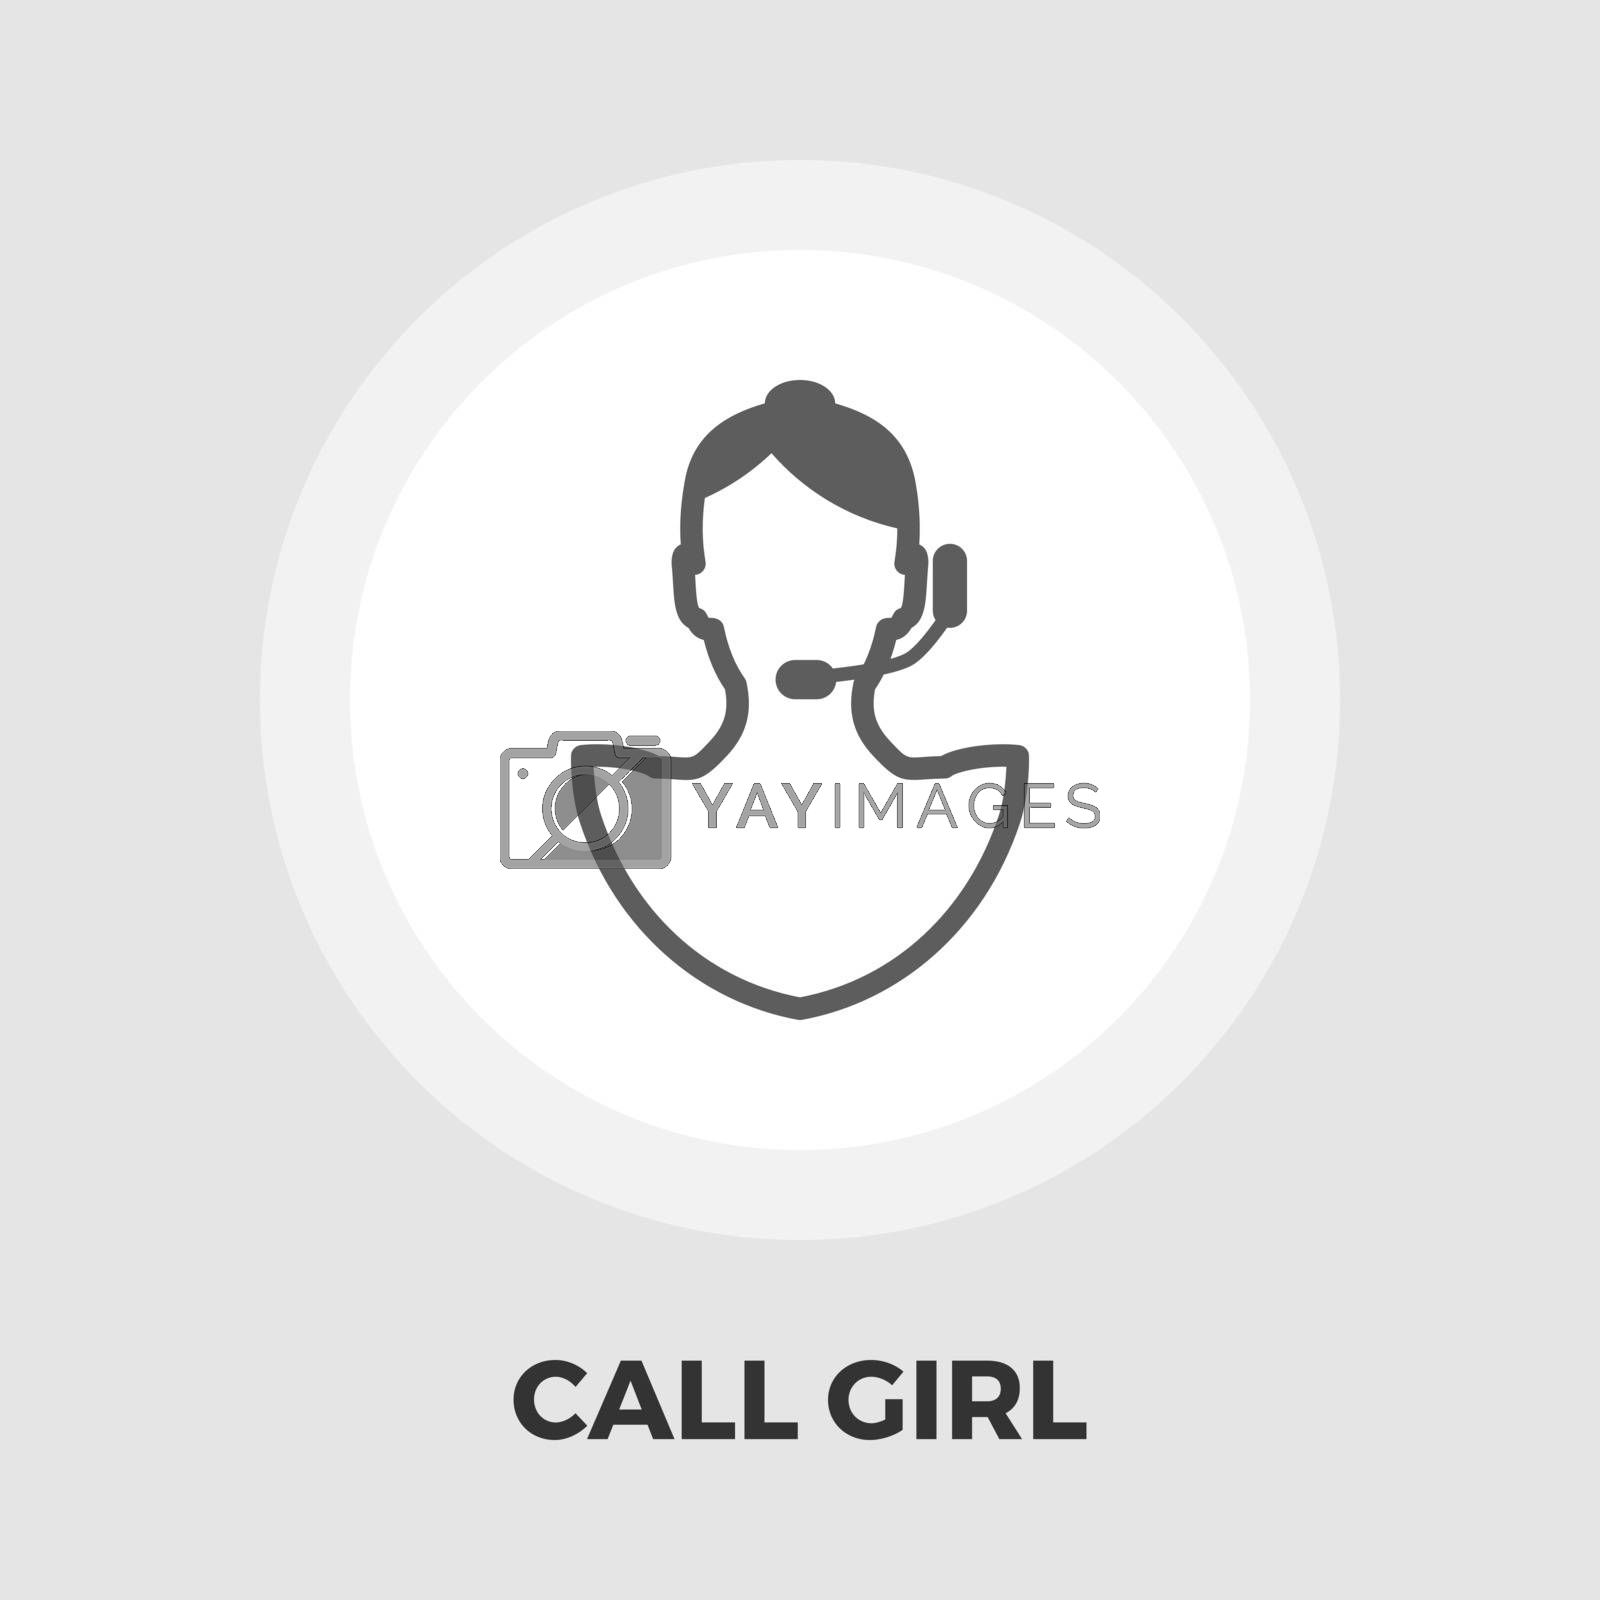 Call girl icon vector. Flat icon isolated on the white background. Editable EPS file. Vector illustration.